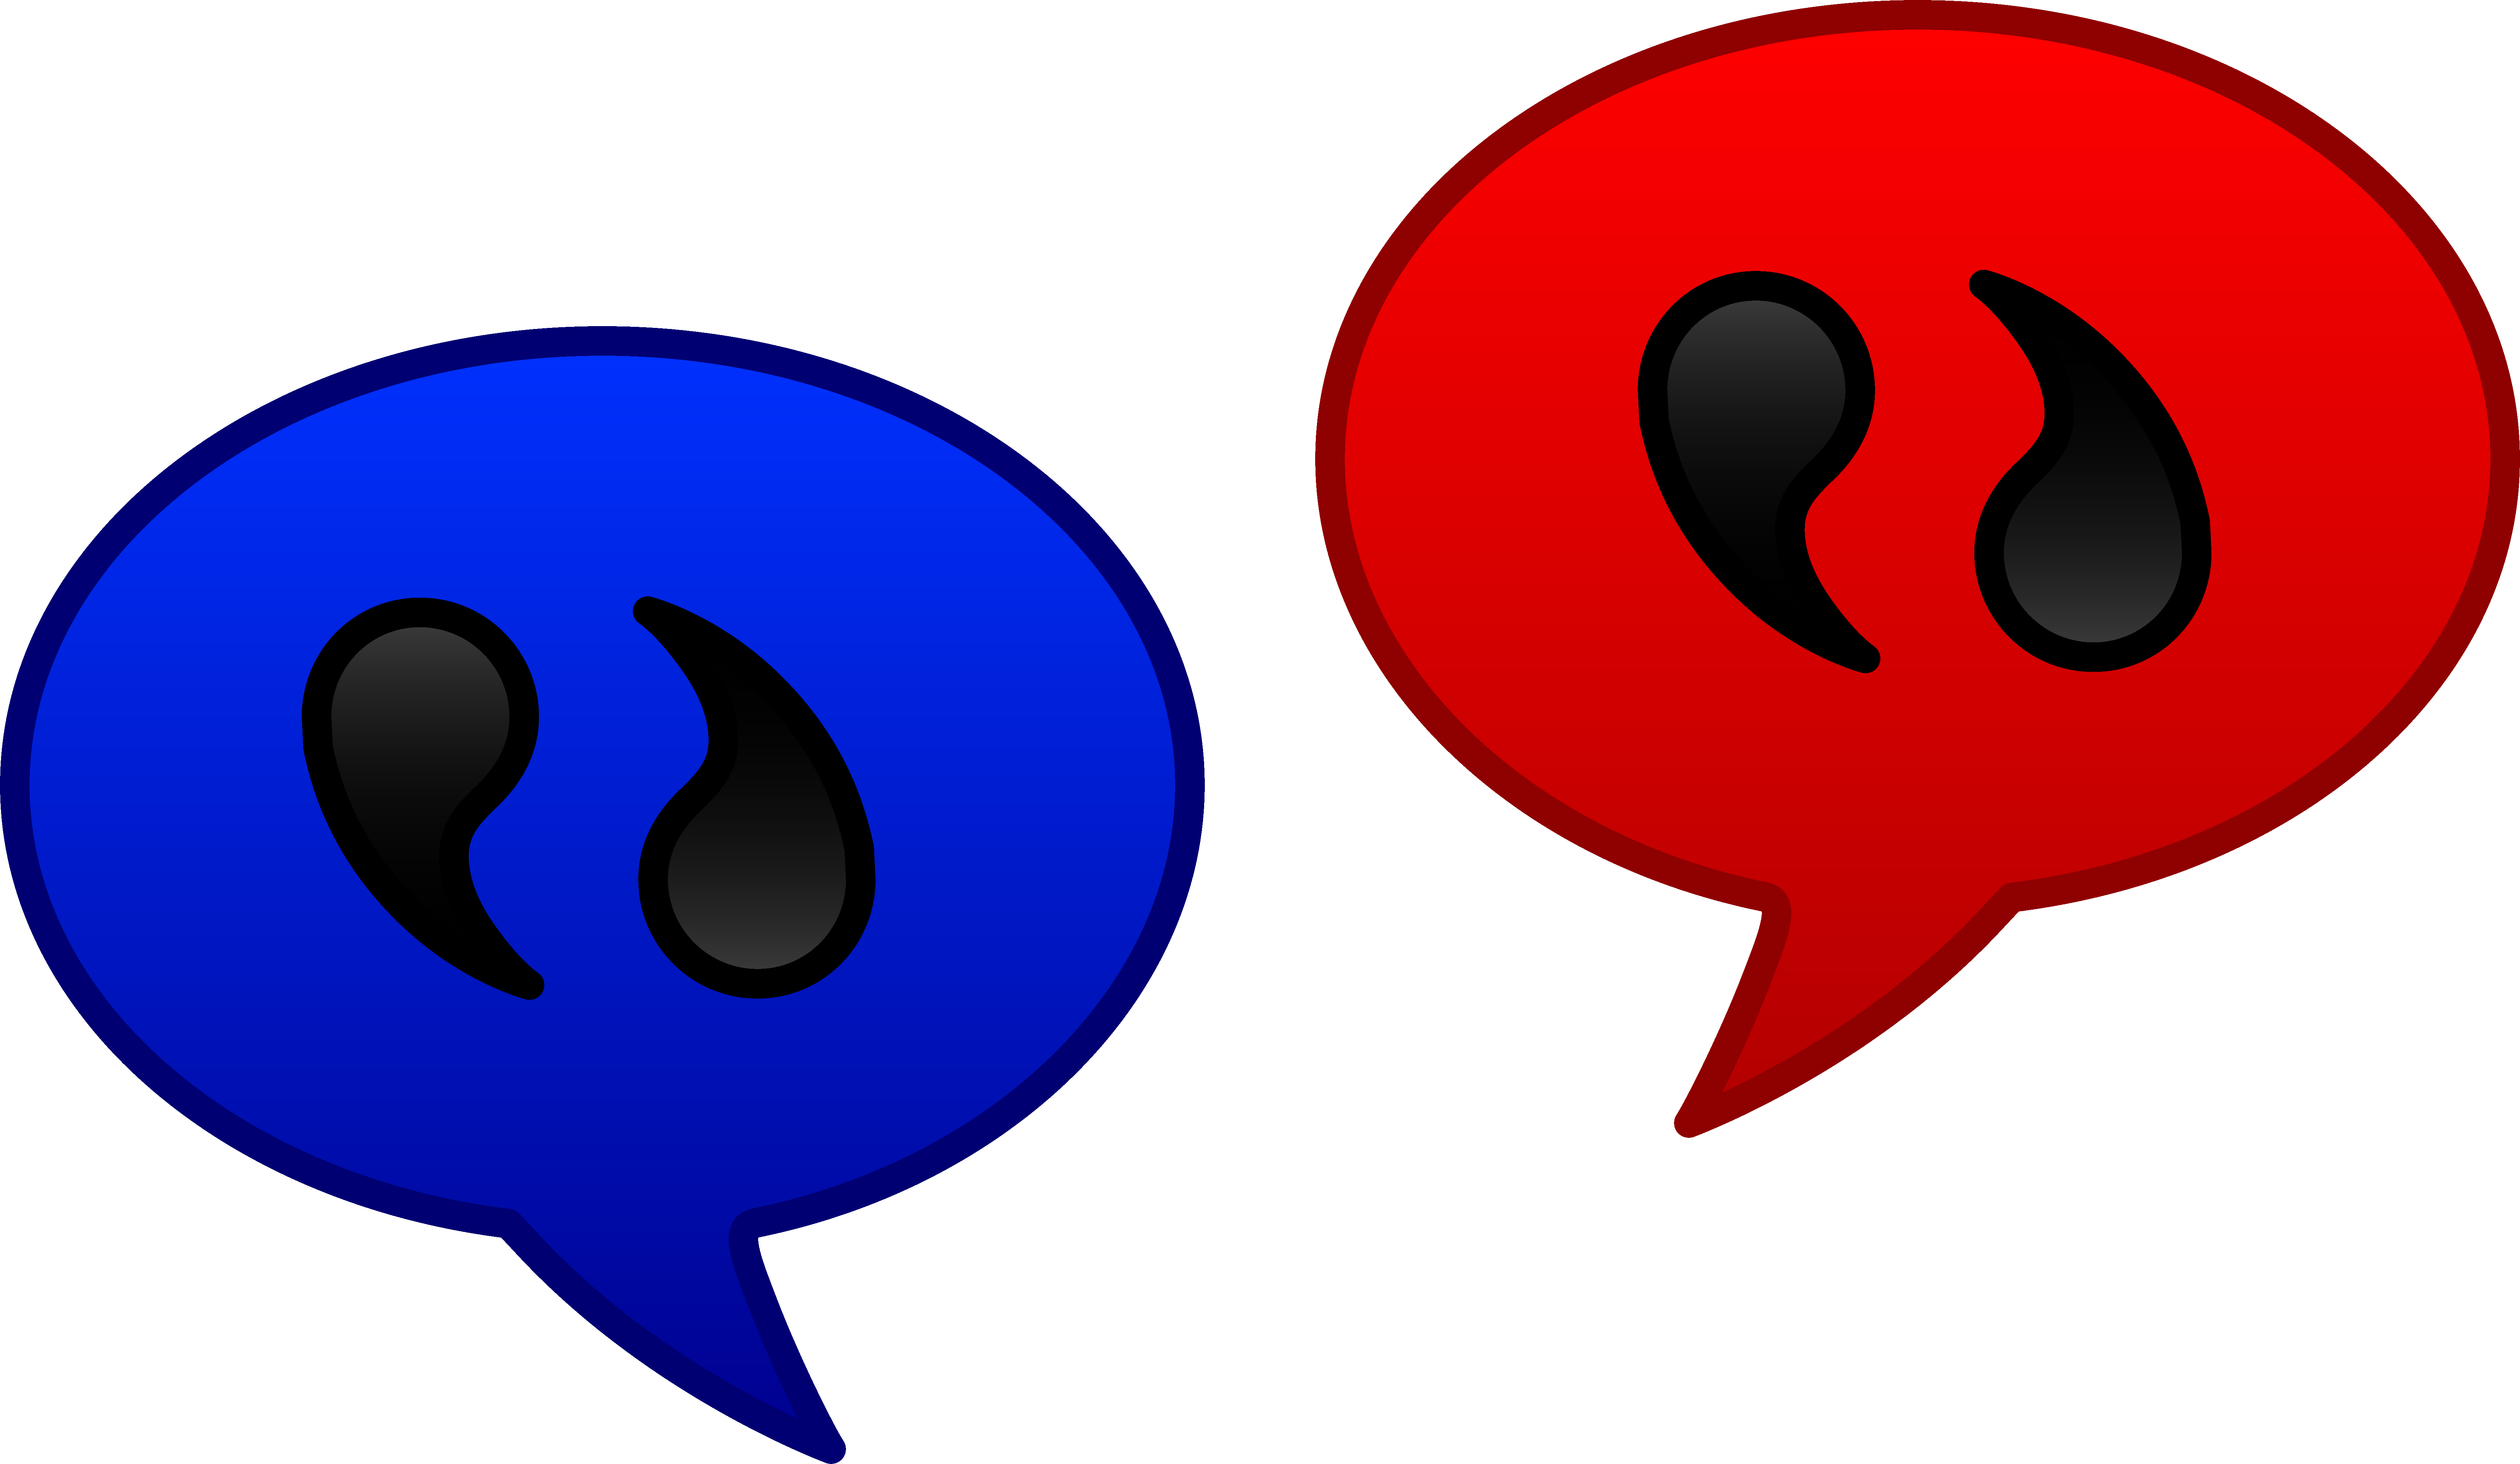 Speaking clipart dialogue. Speech balloon communication icons